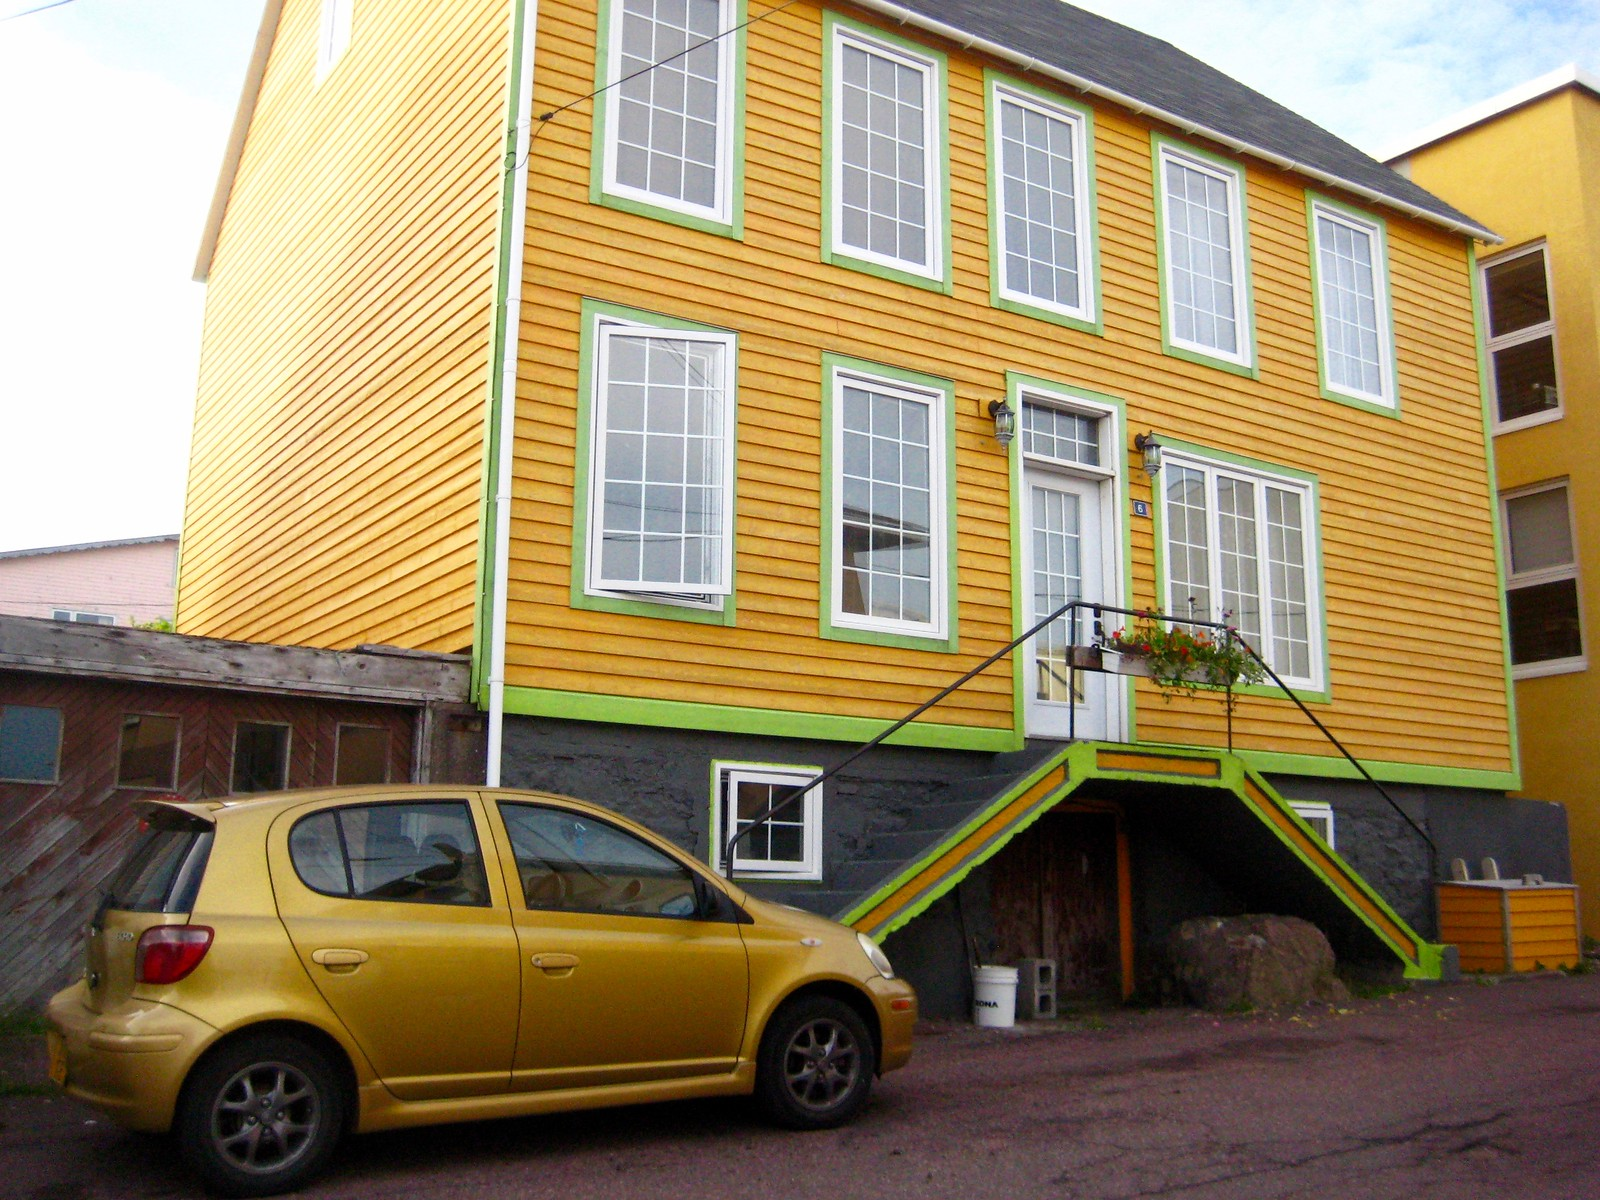 yellow clapboard house in St. Pierre with a yellow car parked in front